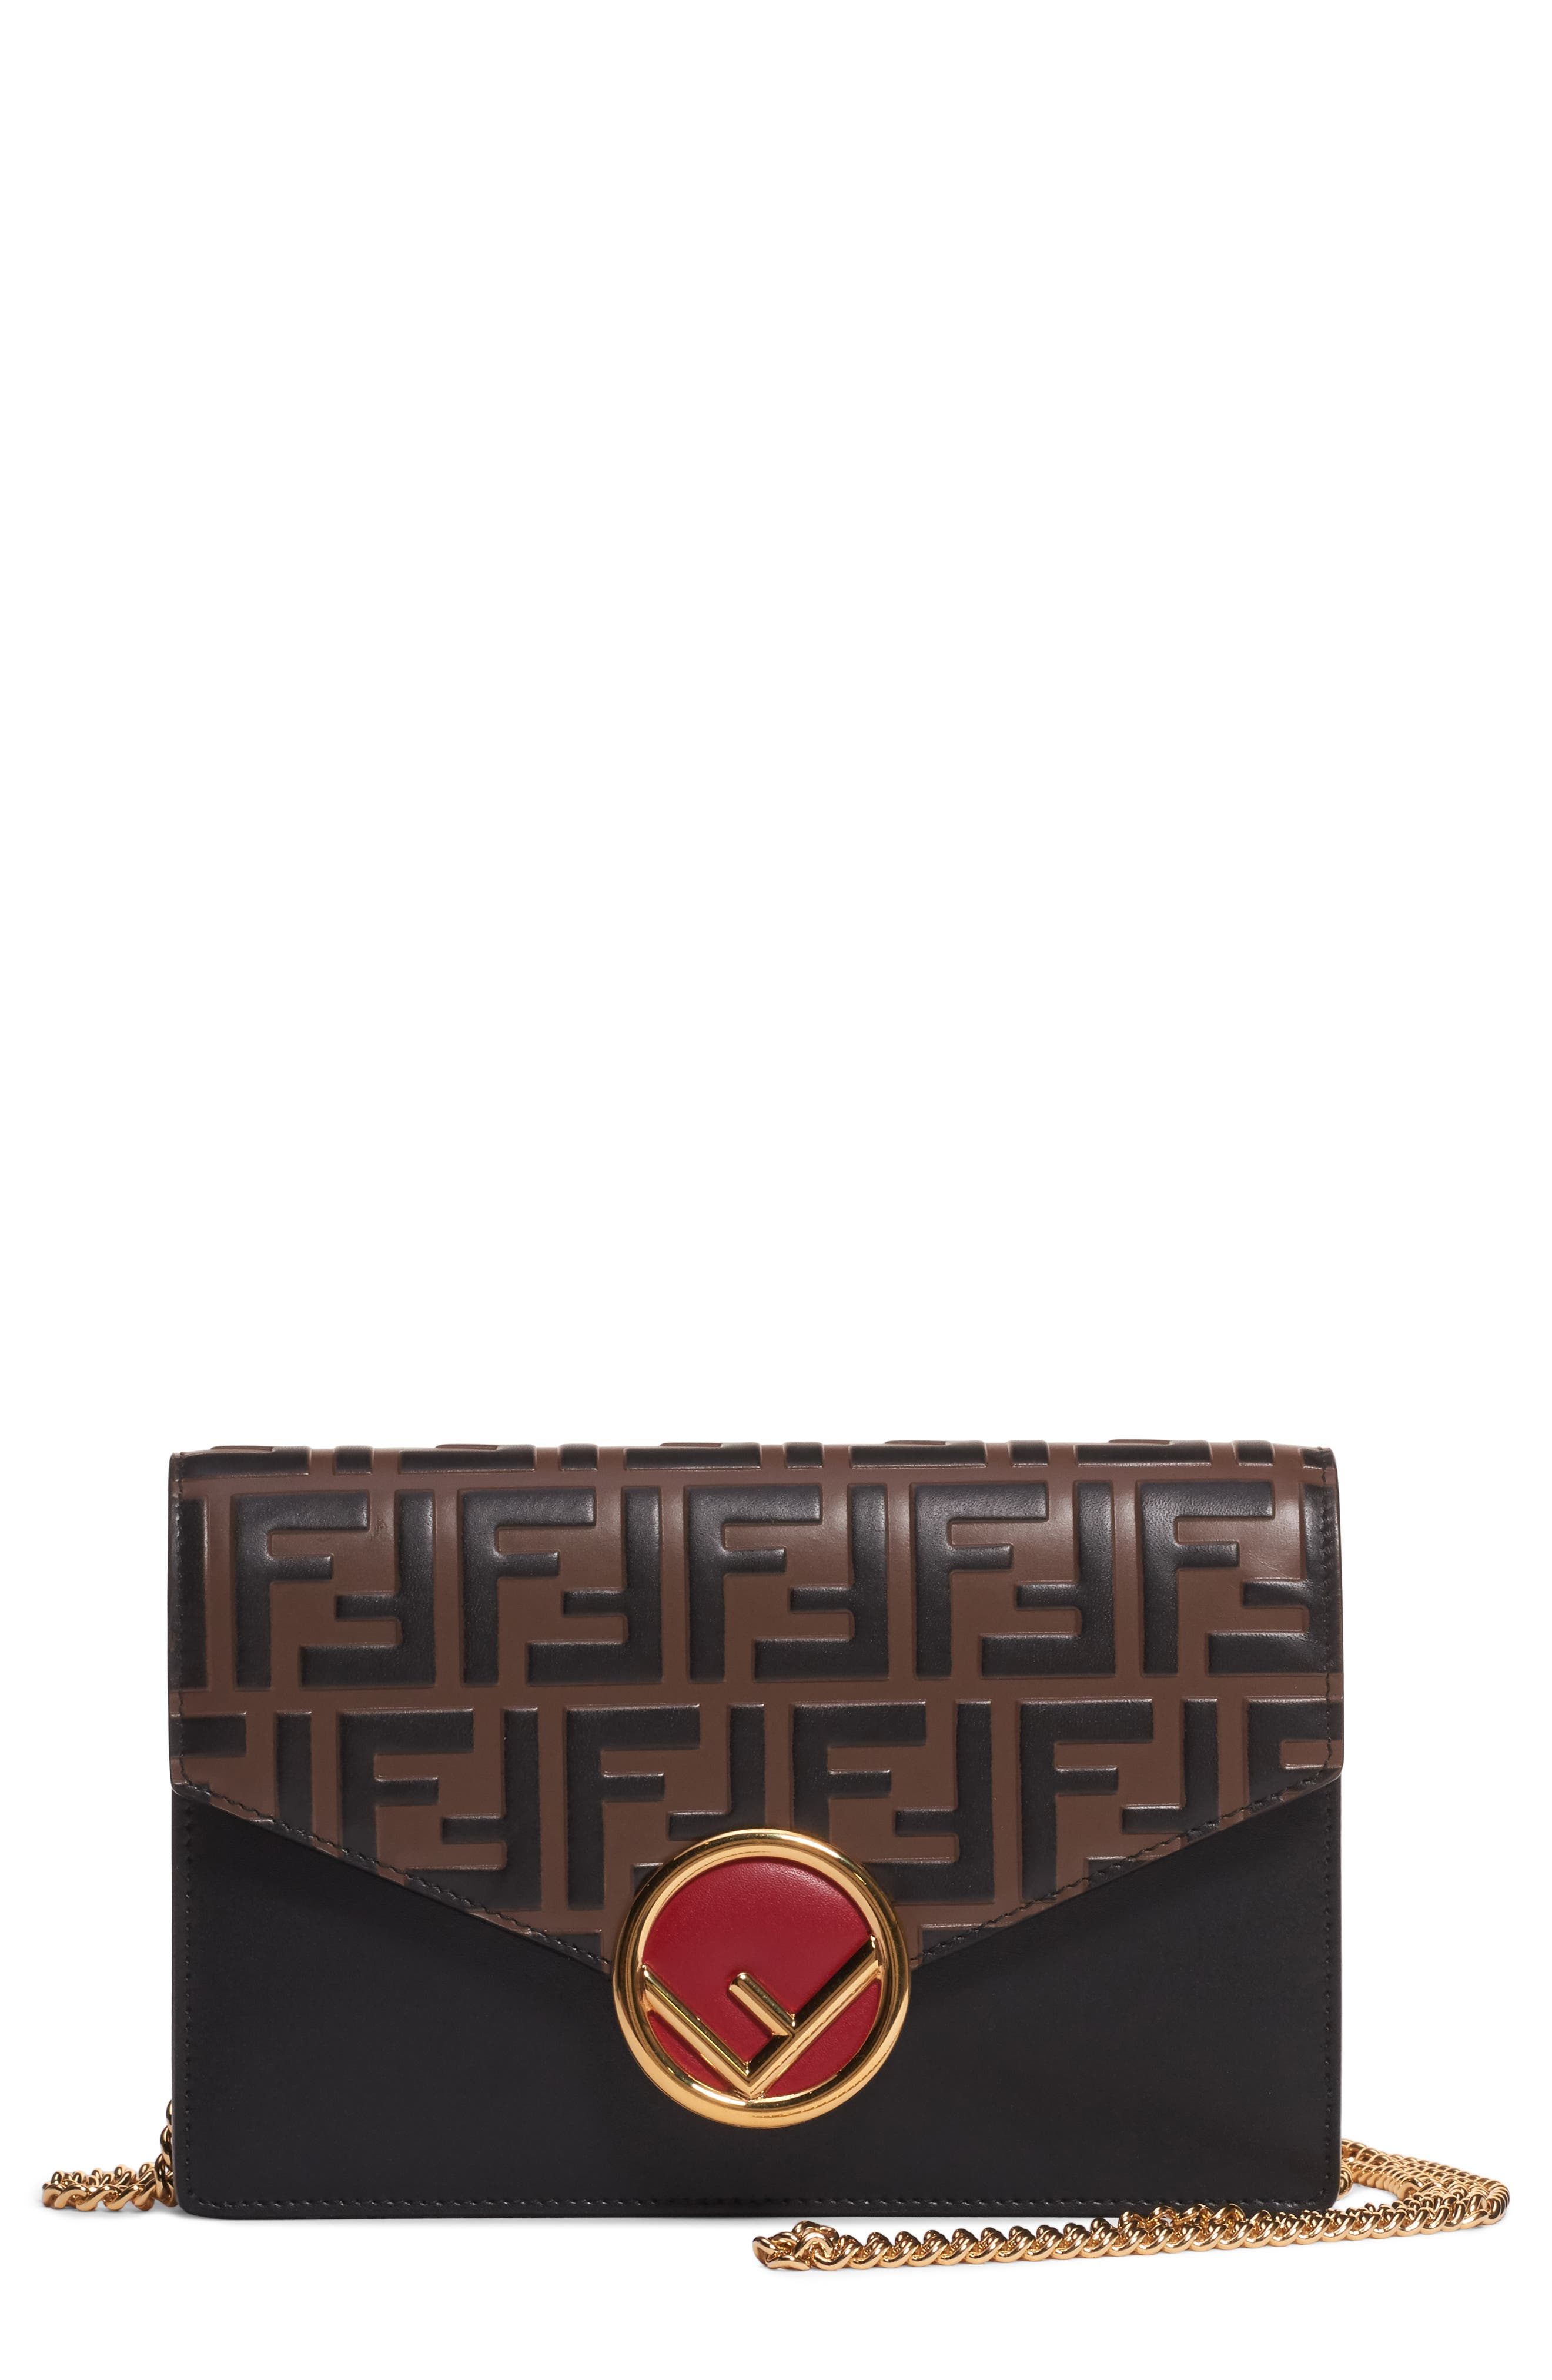 FENDI, Logo Calfskin Leather Wallet on a Chain, Main thumbnail 1, color, 201